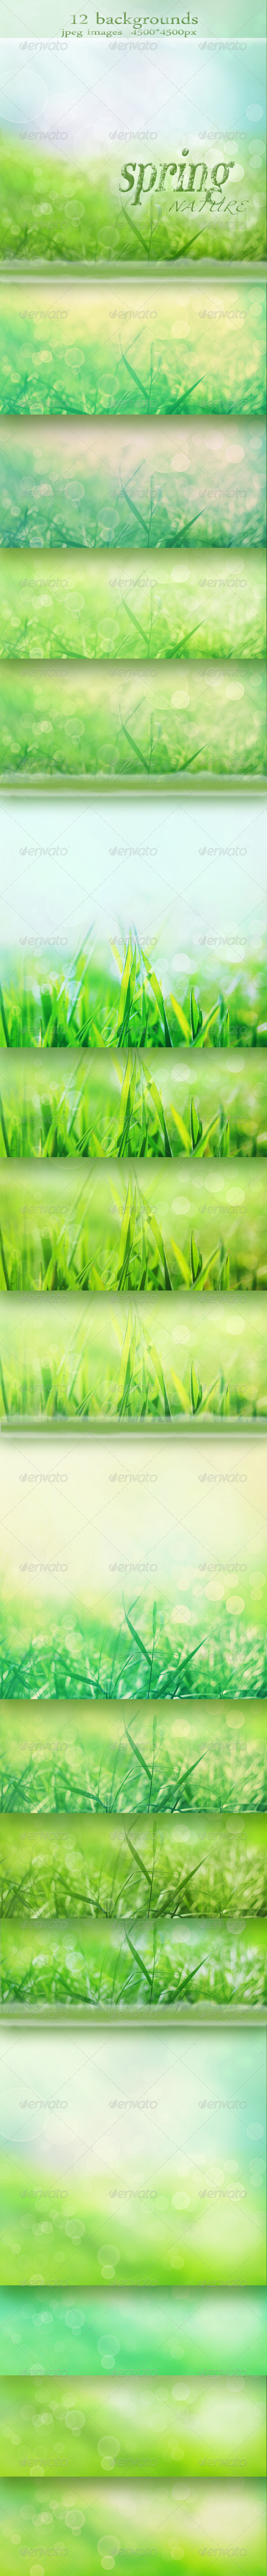 Nature Spring Backgrounds with Bokeh Effect